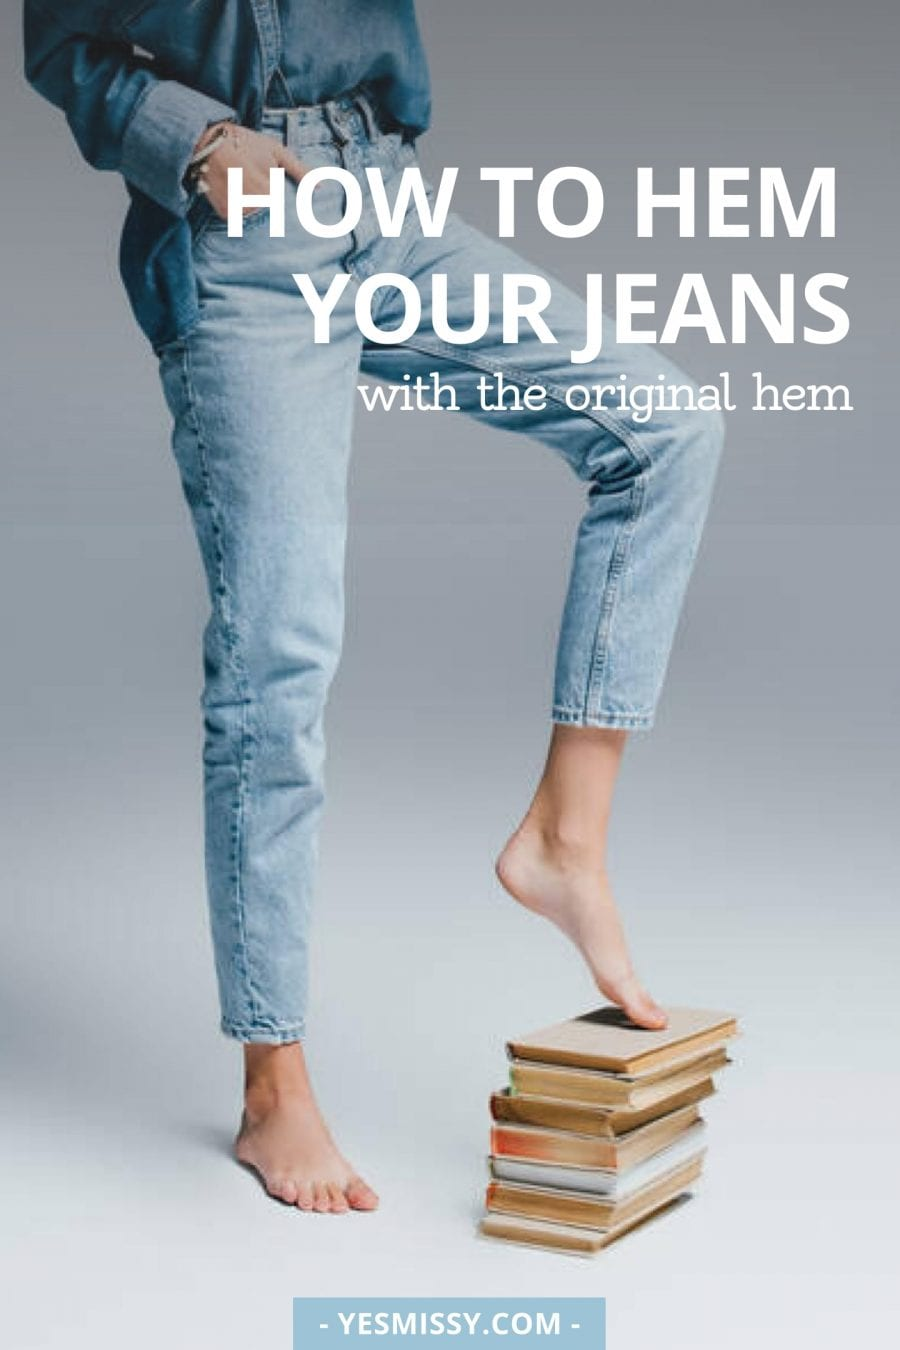 DIY tutorial - Learn how to hem your jeans to the correct length and with the original hem.